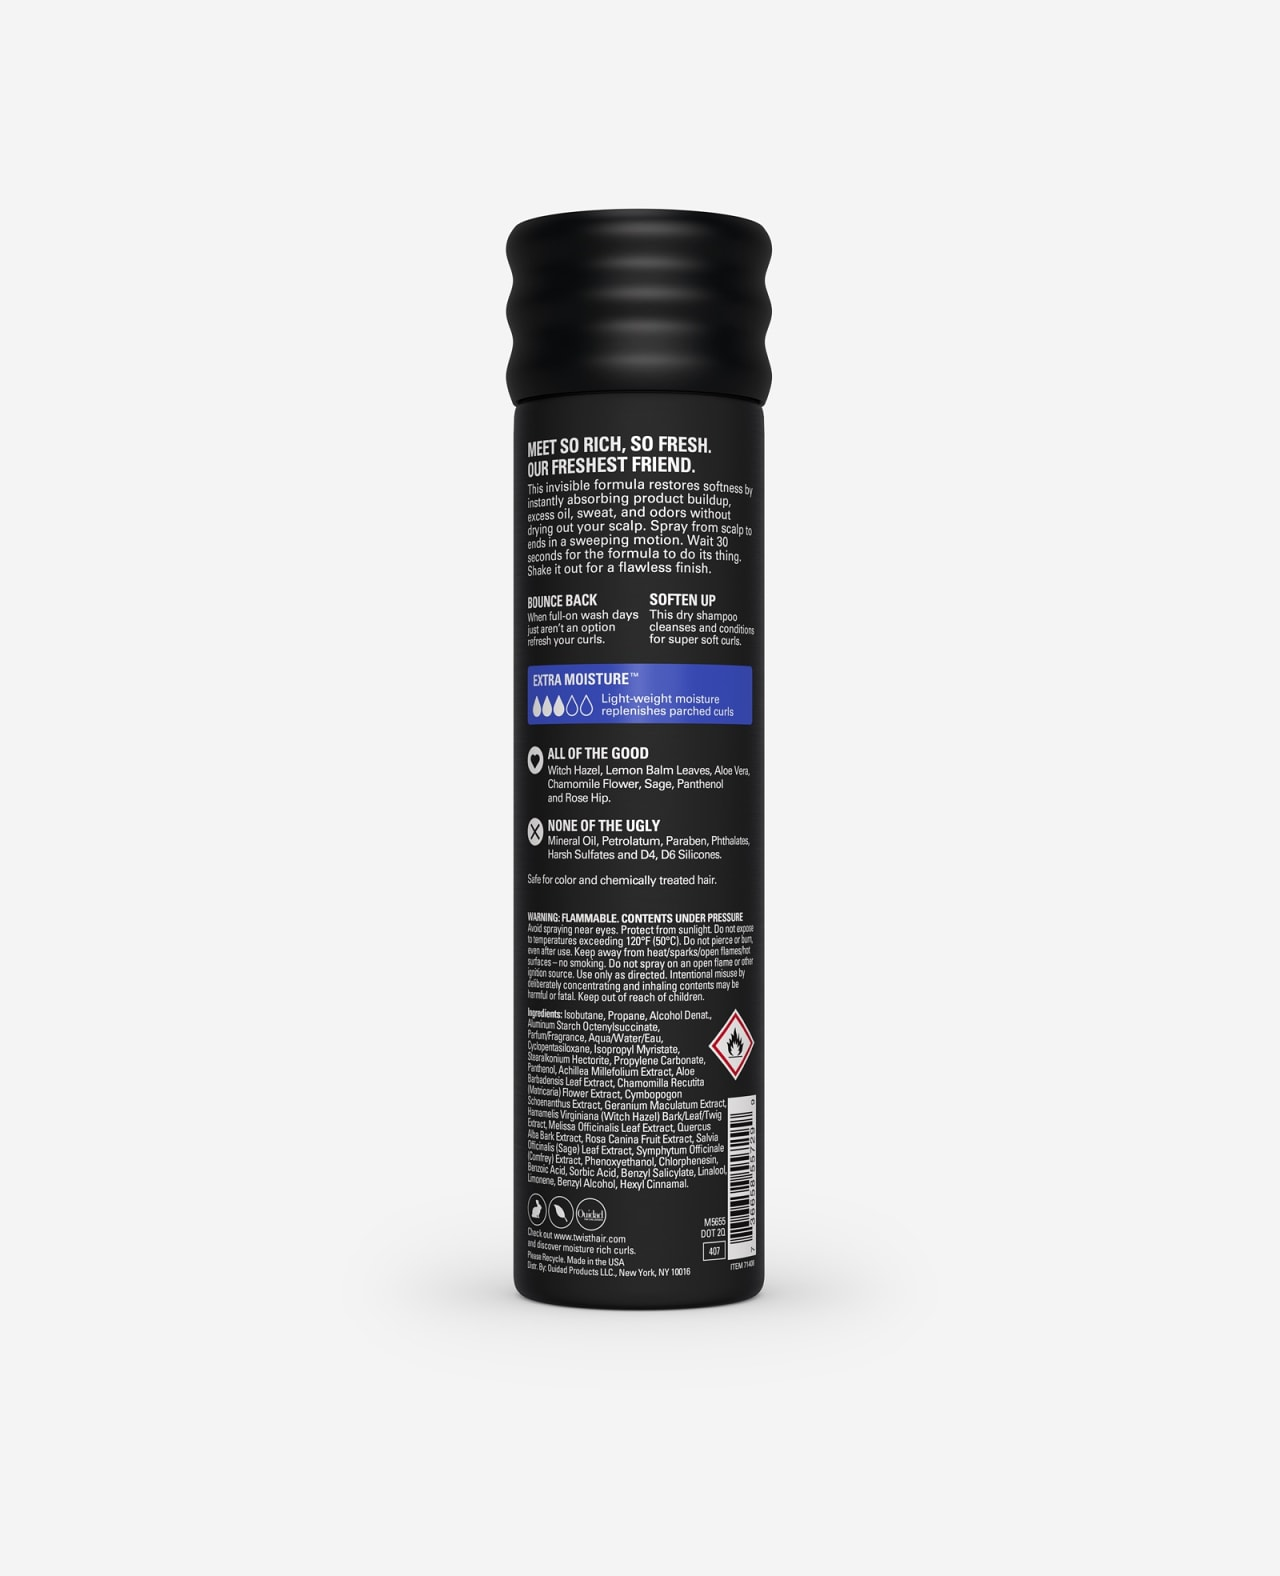 Twist So Rich So Fresh Cleansing and Conditioning Dry Shampoo Extra Moisture for Curls 6.1 oz back of spray can